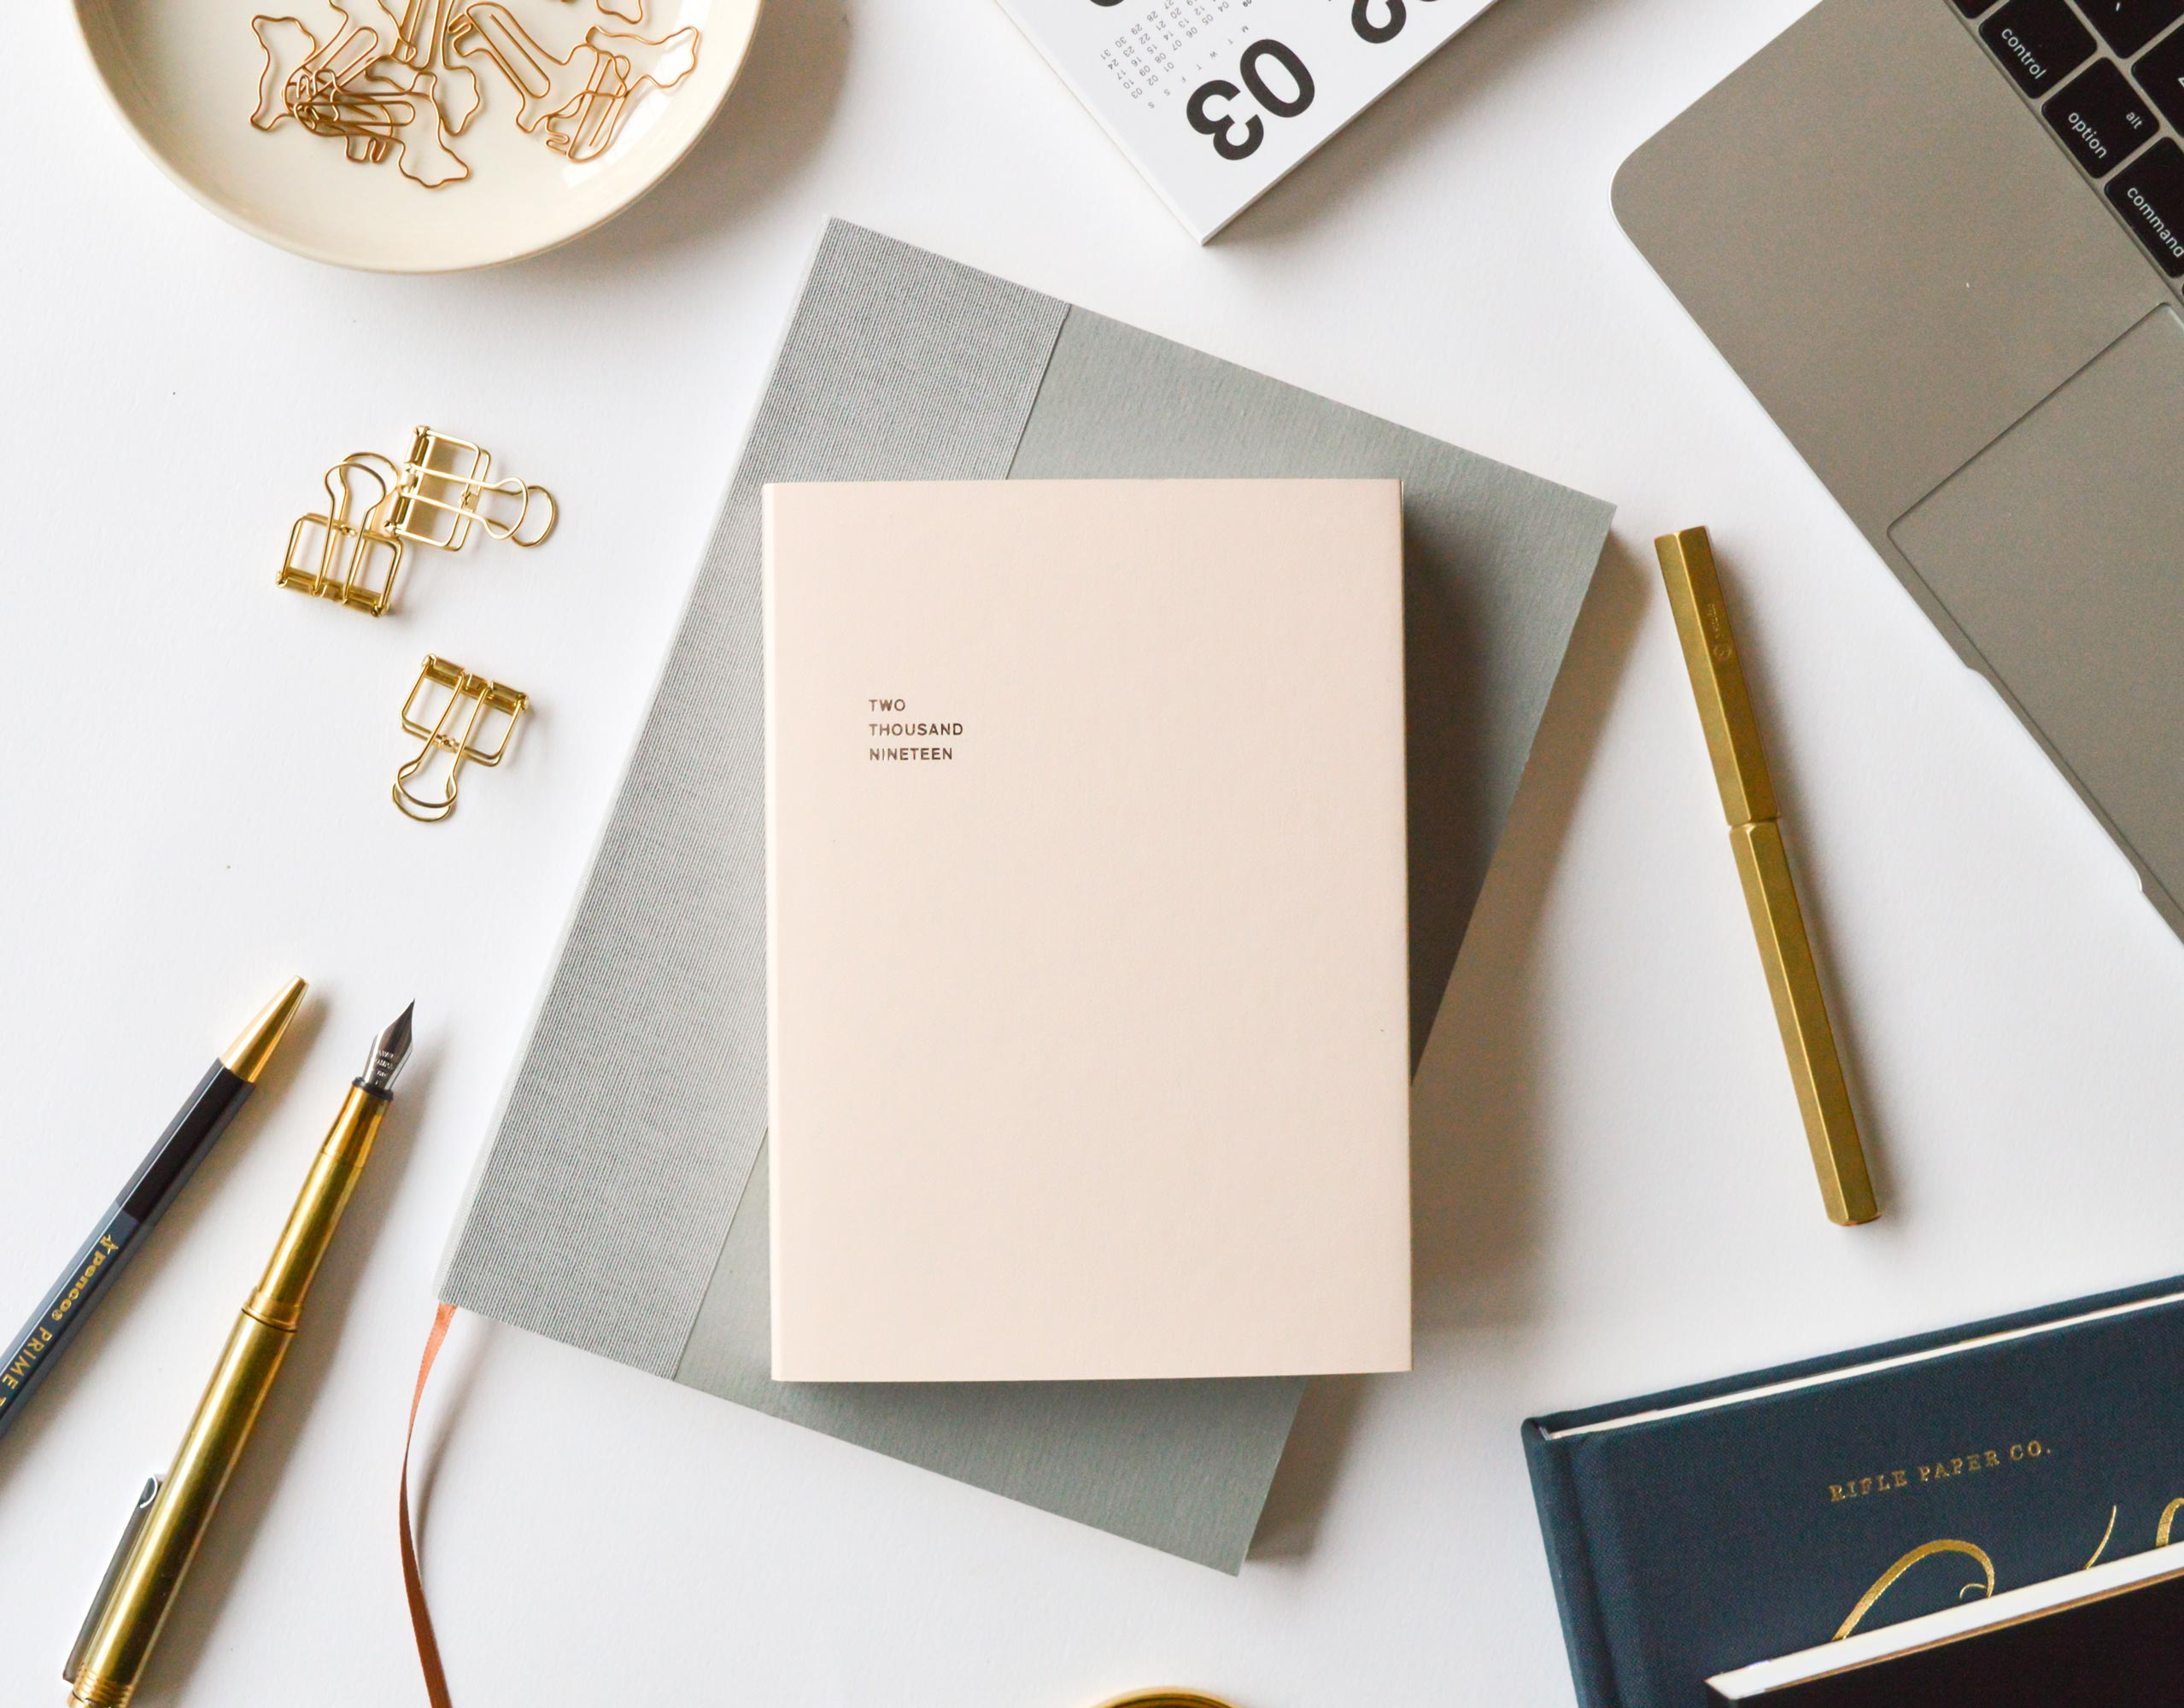 Quill London | Luxury Stationery & Calligraphy Supplies | Calendars, Planners & Diaries